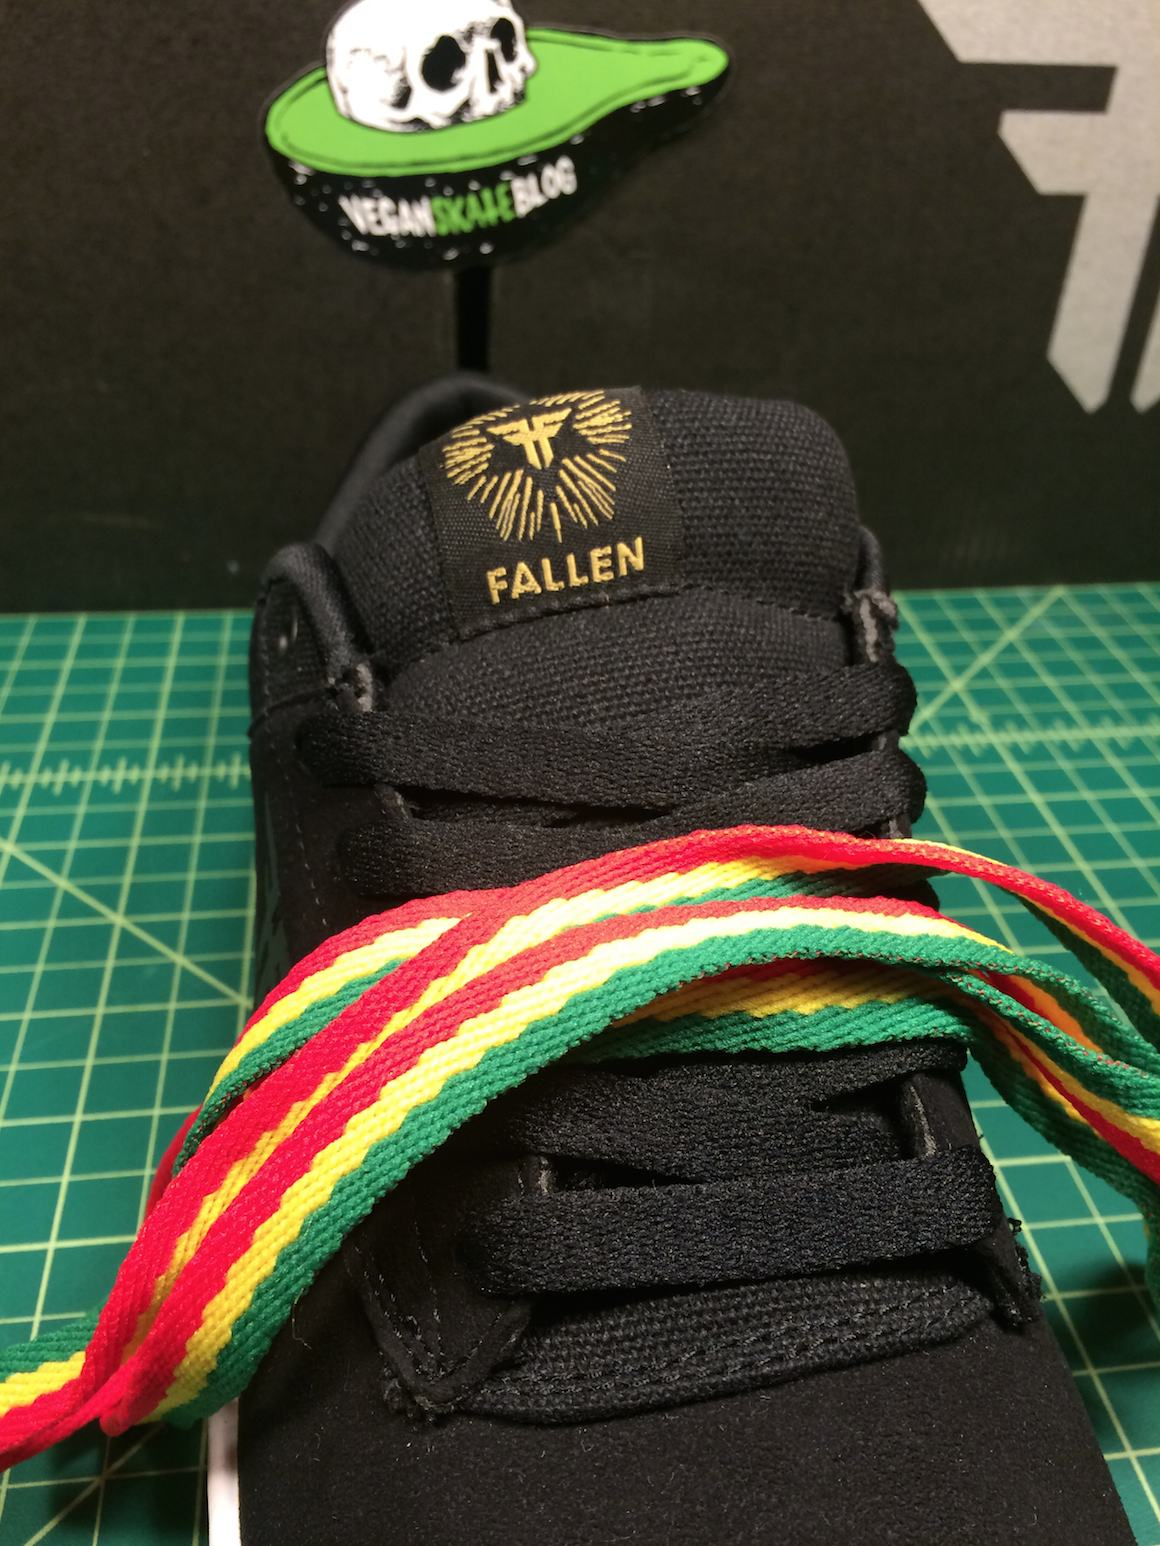 vegan skateboard shoes rasta laces fallen synthetic